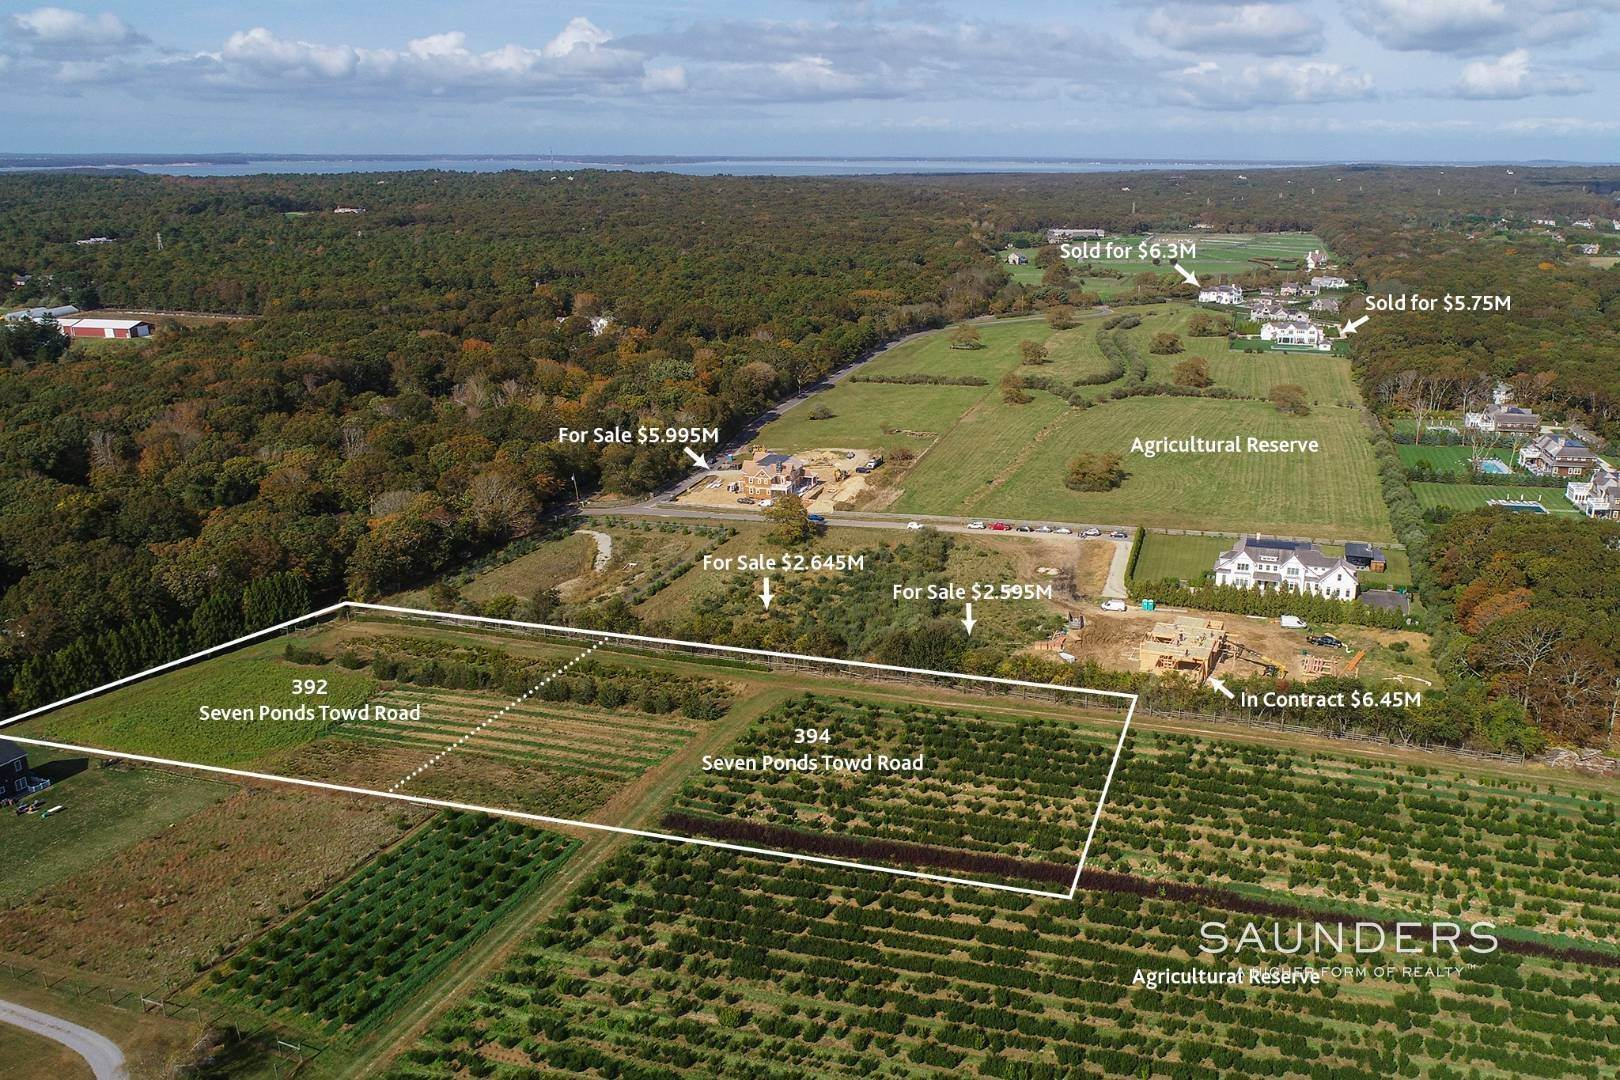 4. Land for Sale at Estate-Quality Parcels Overlooking 48 Acre Reserve 394 Seven Ponds Towd Road, Water Mill, Southampton Town, NY 11976